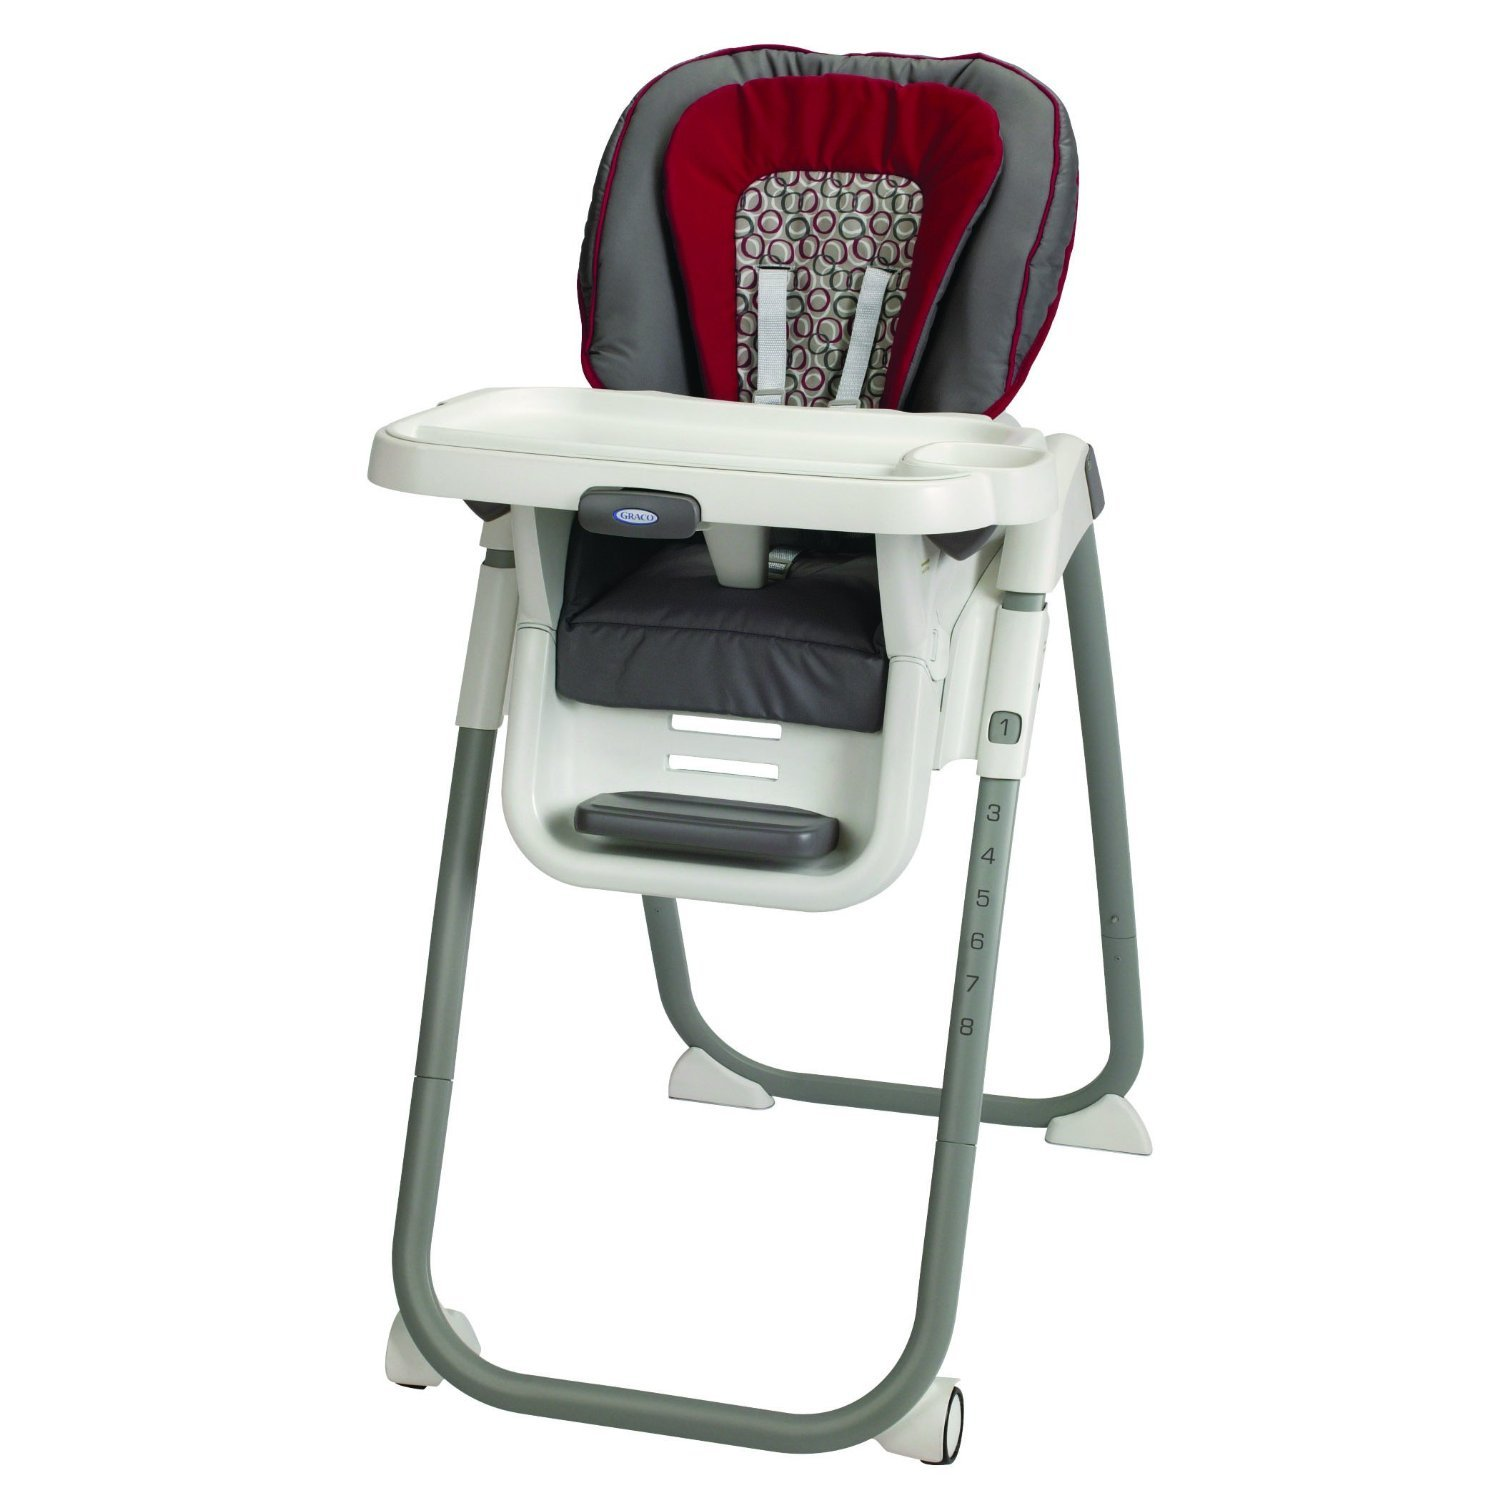 Graco TableFit Baby High Chair, Finley by Graco (Image #1)